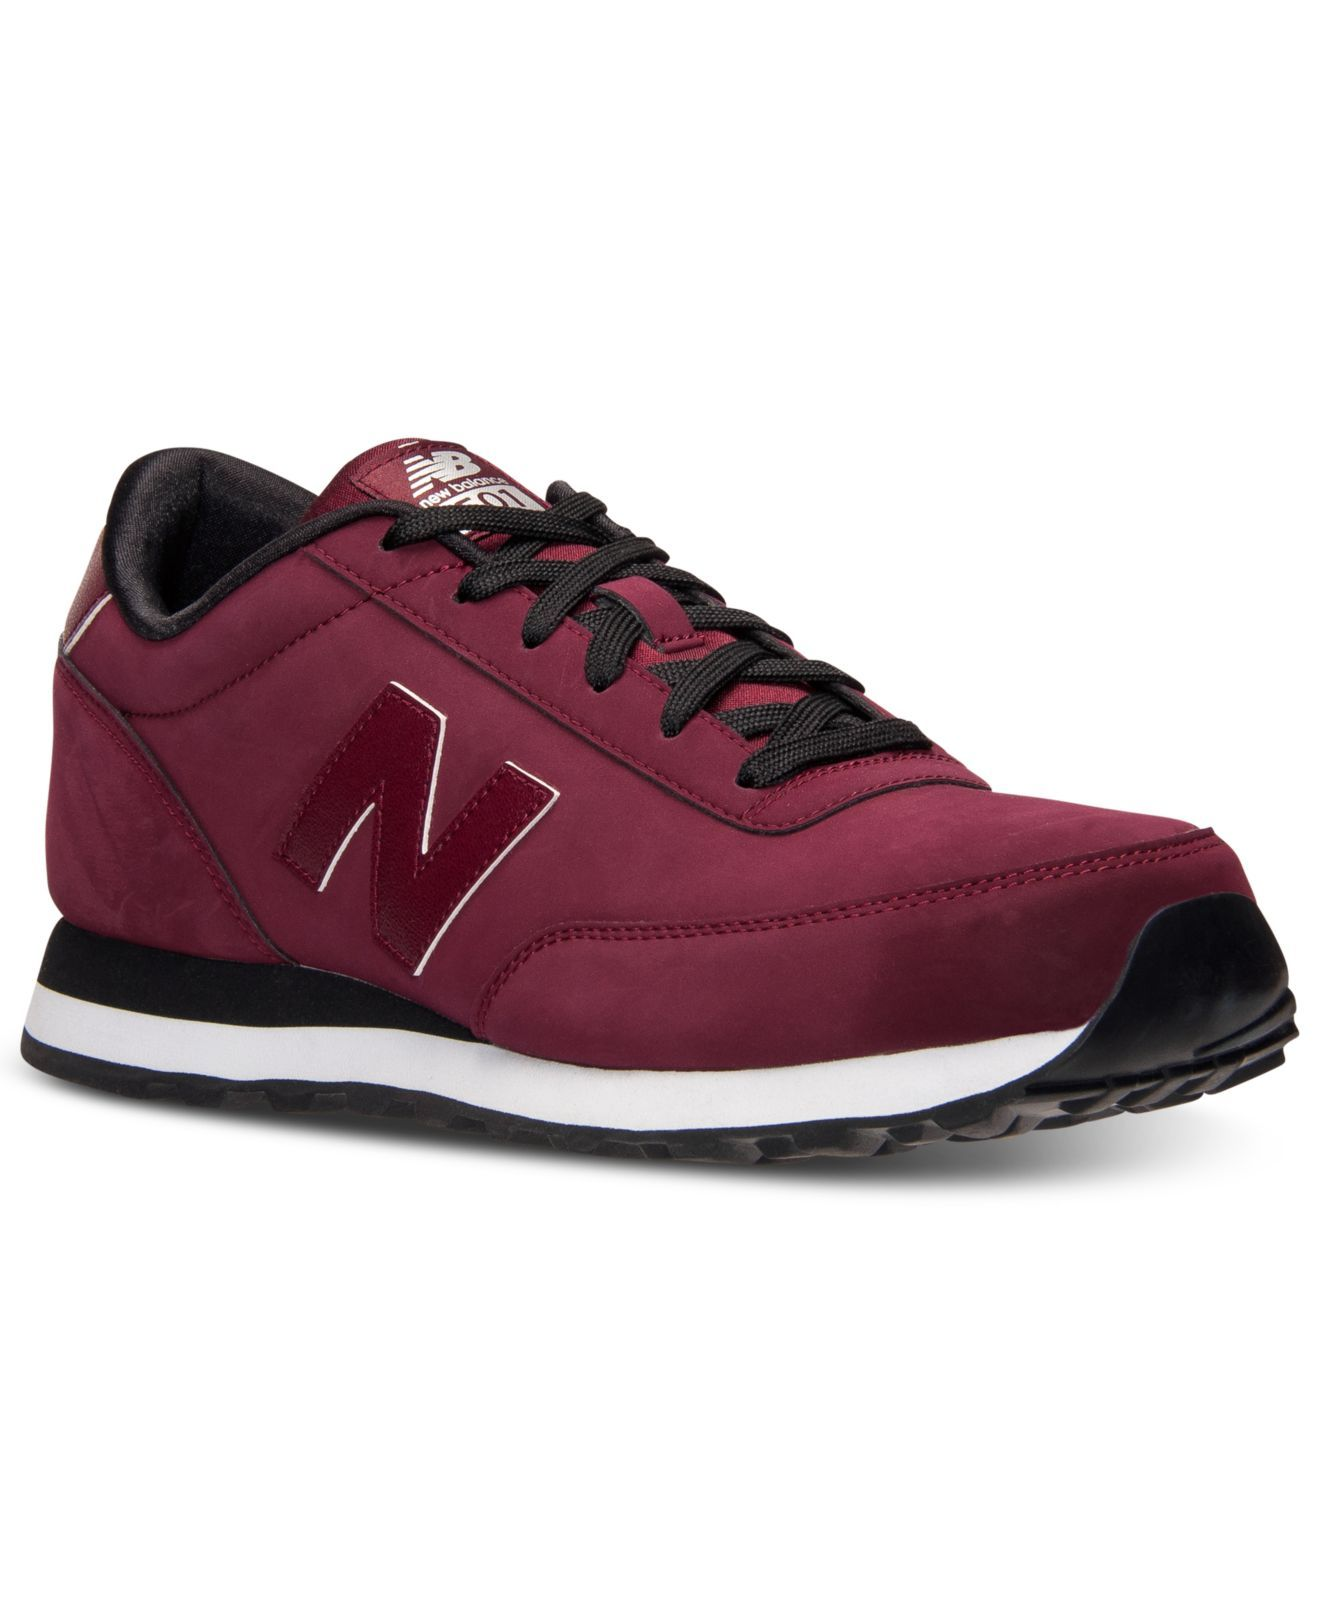 New Balance Men's 501 Casual Sneakers from Finish Line ilRJFweU1